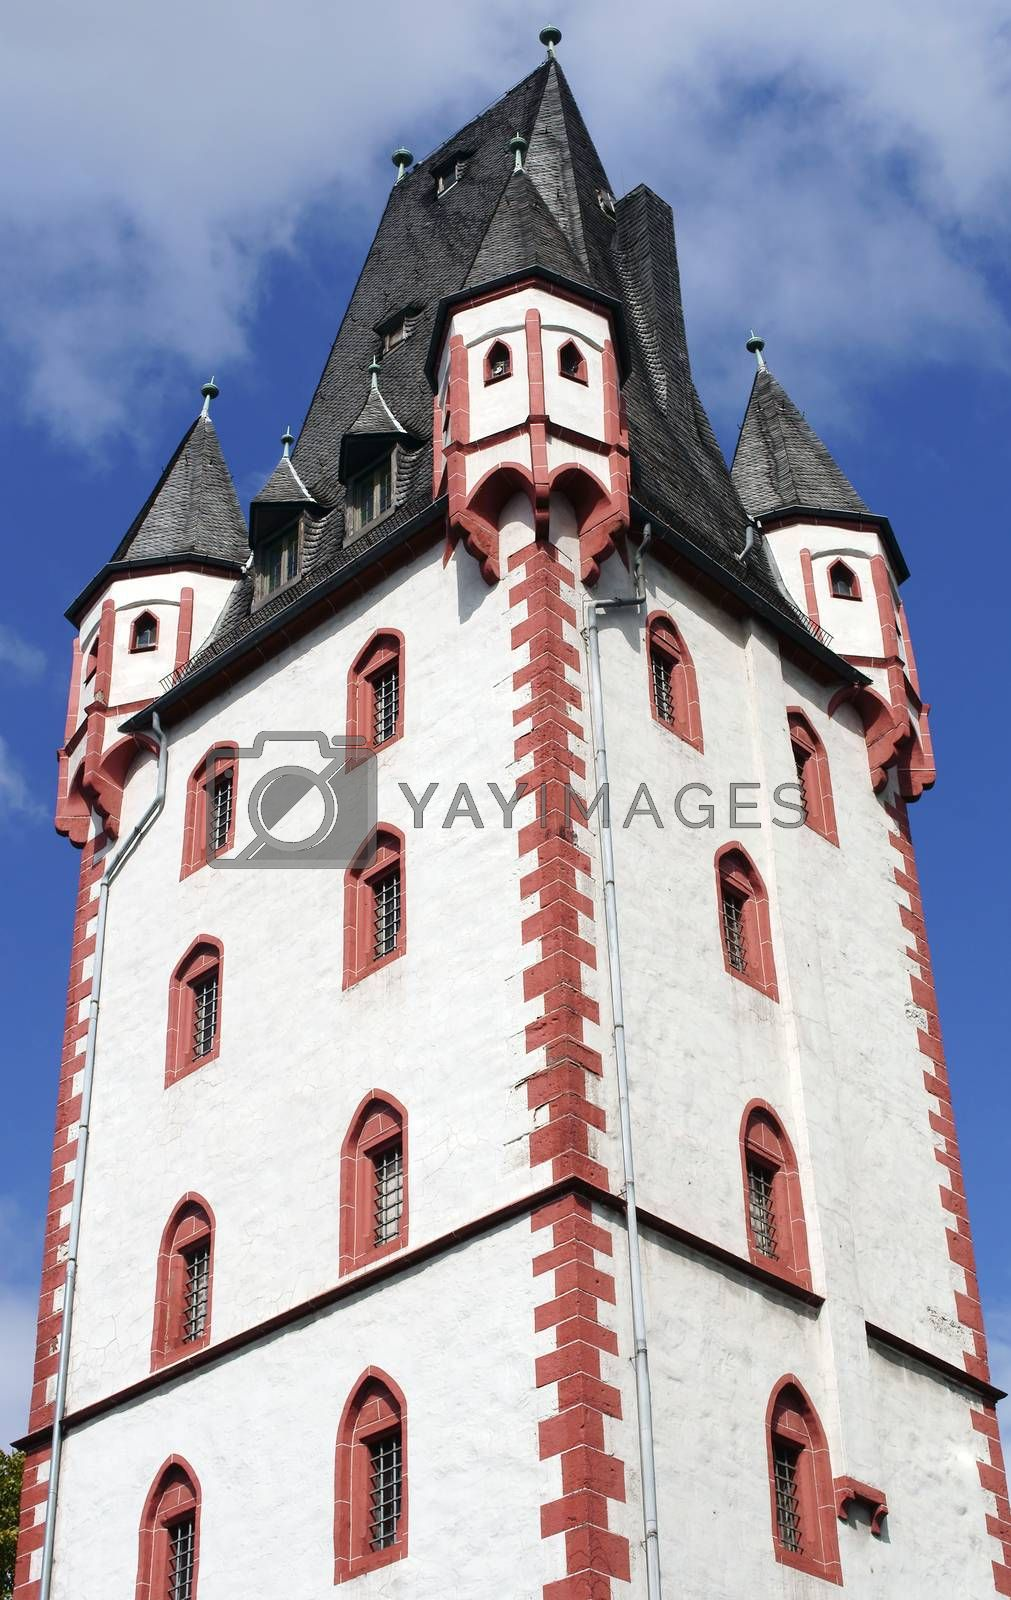 Royalty free image of Iron Tower Mainz by ginton